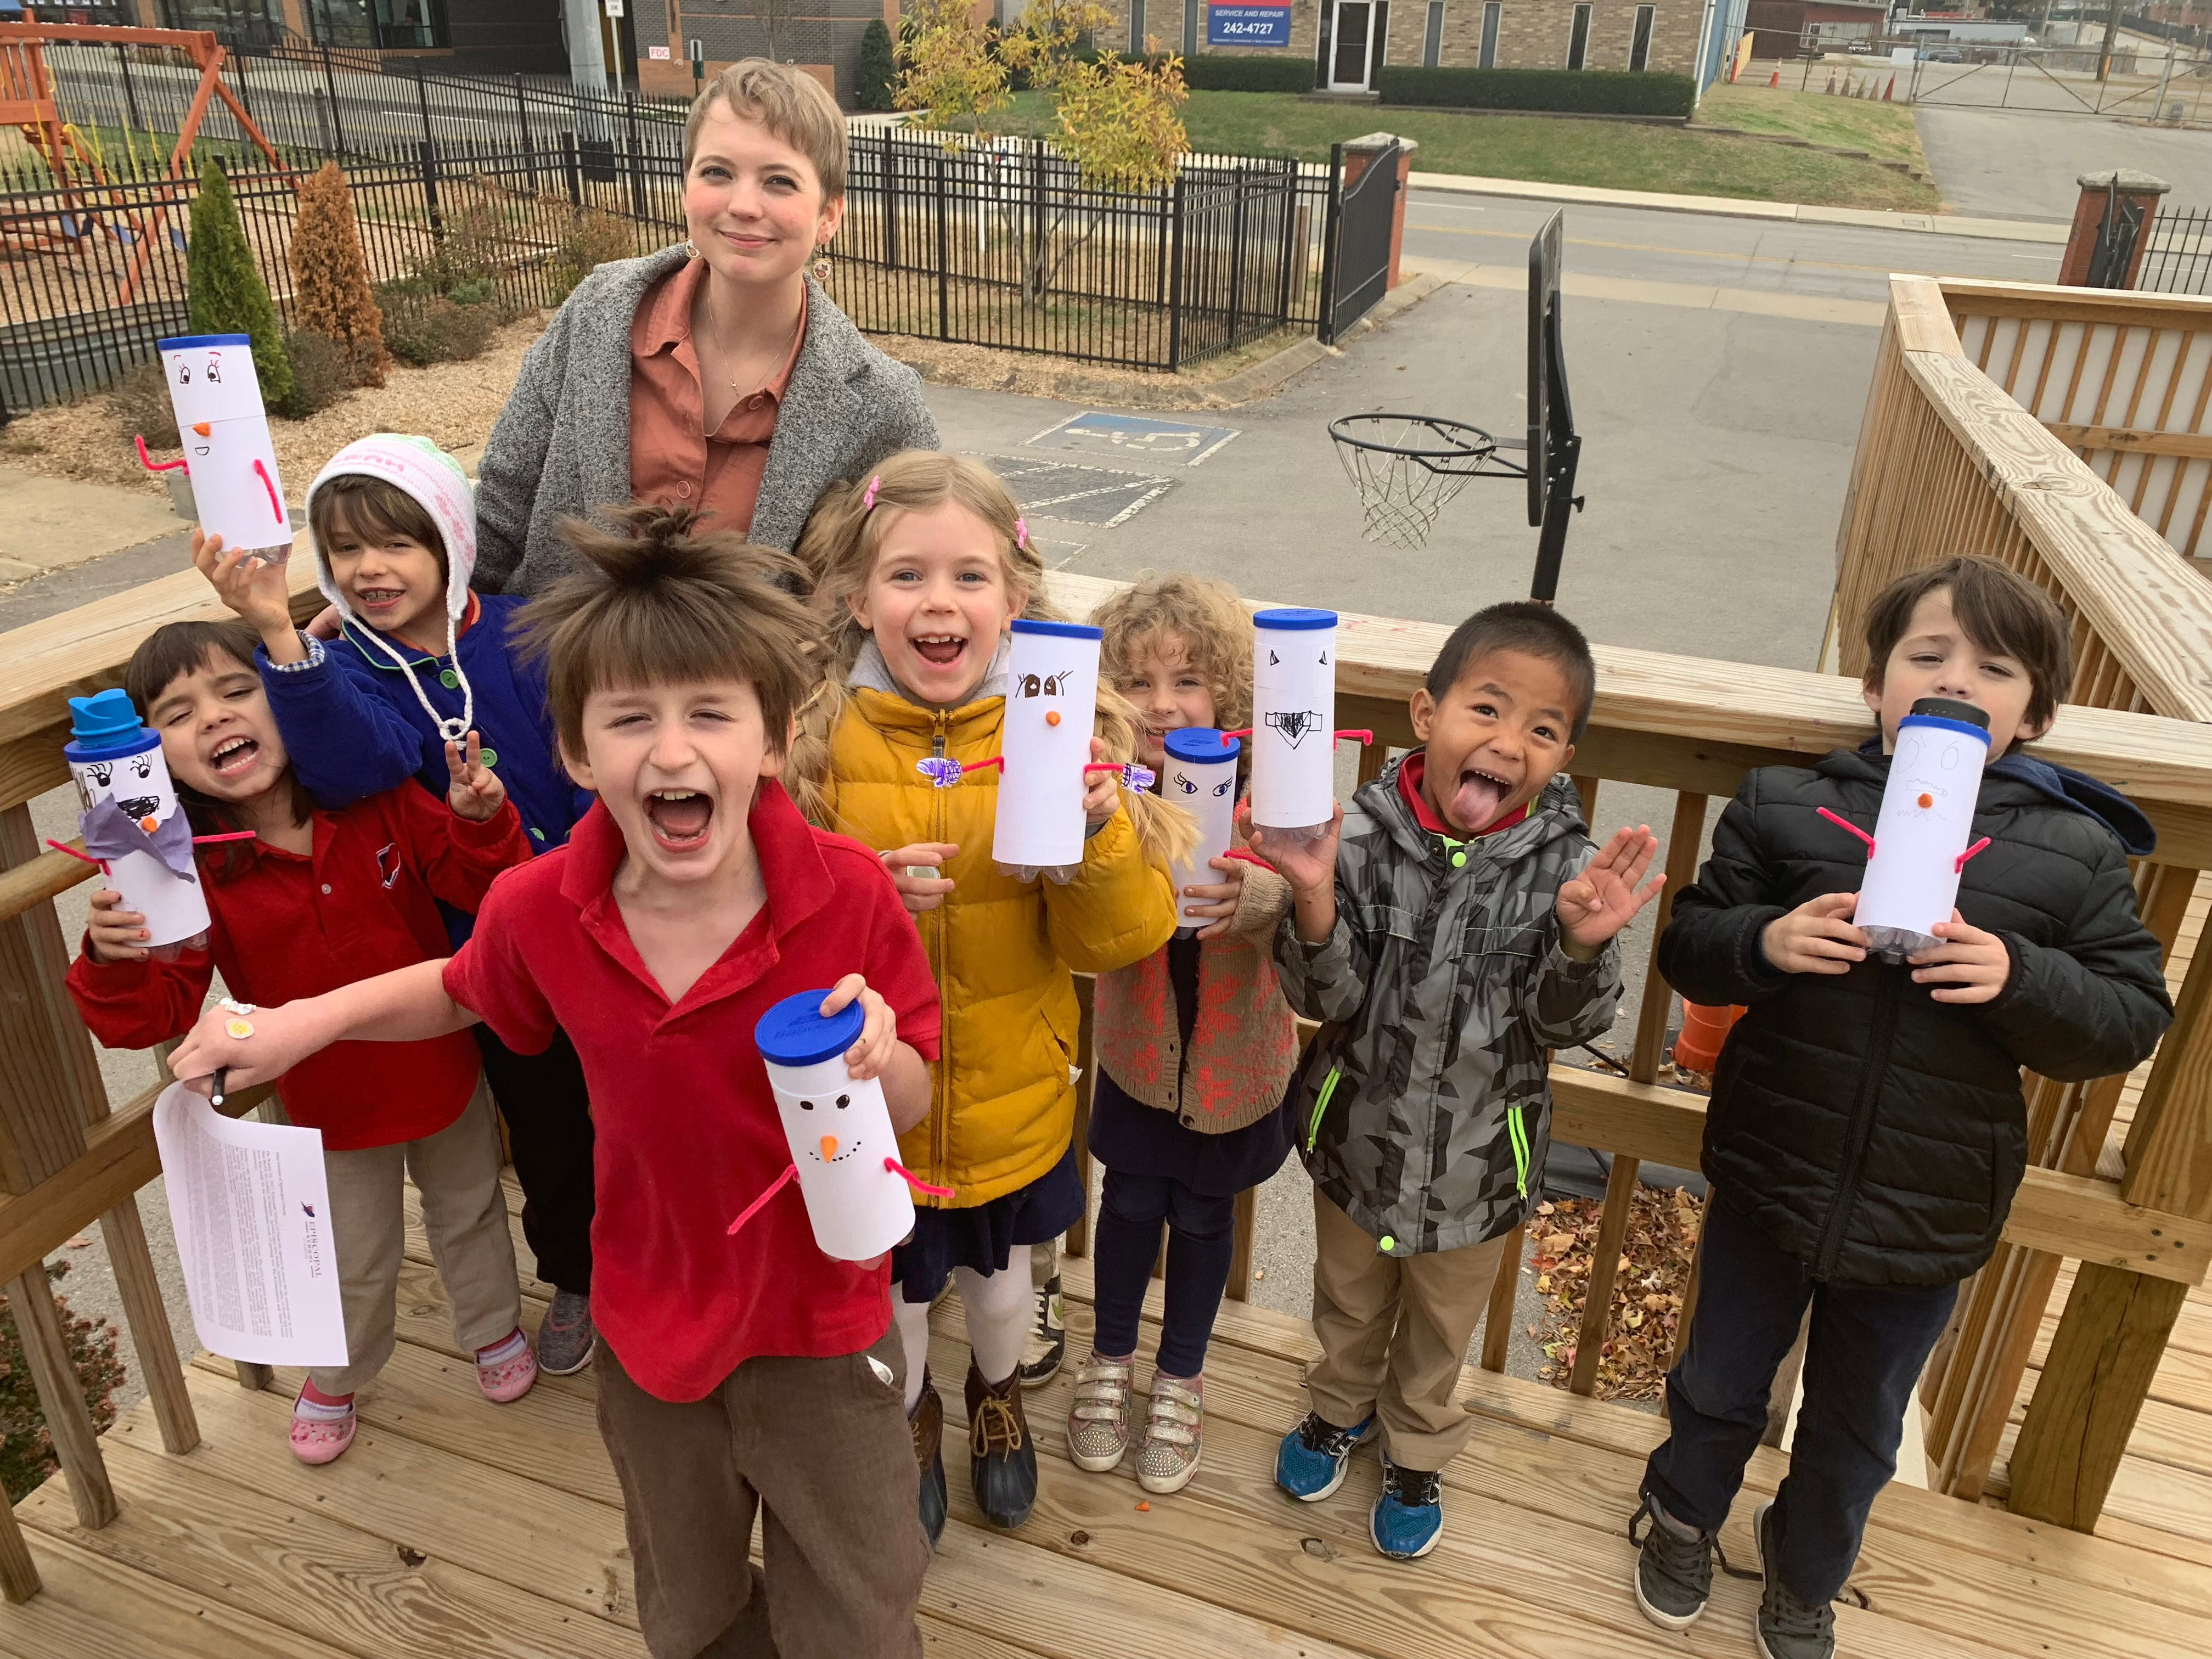 Students at the Episcopal School of Nashville made snowman containers to collect money for the Penny Drive.